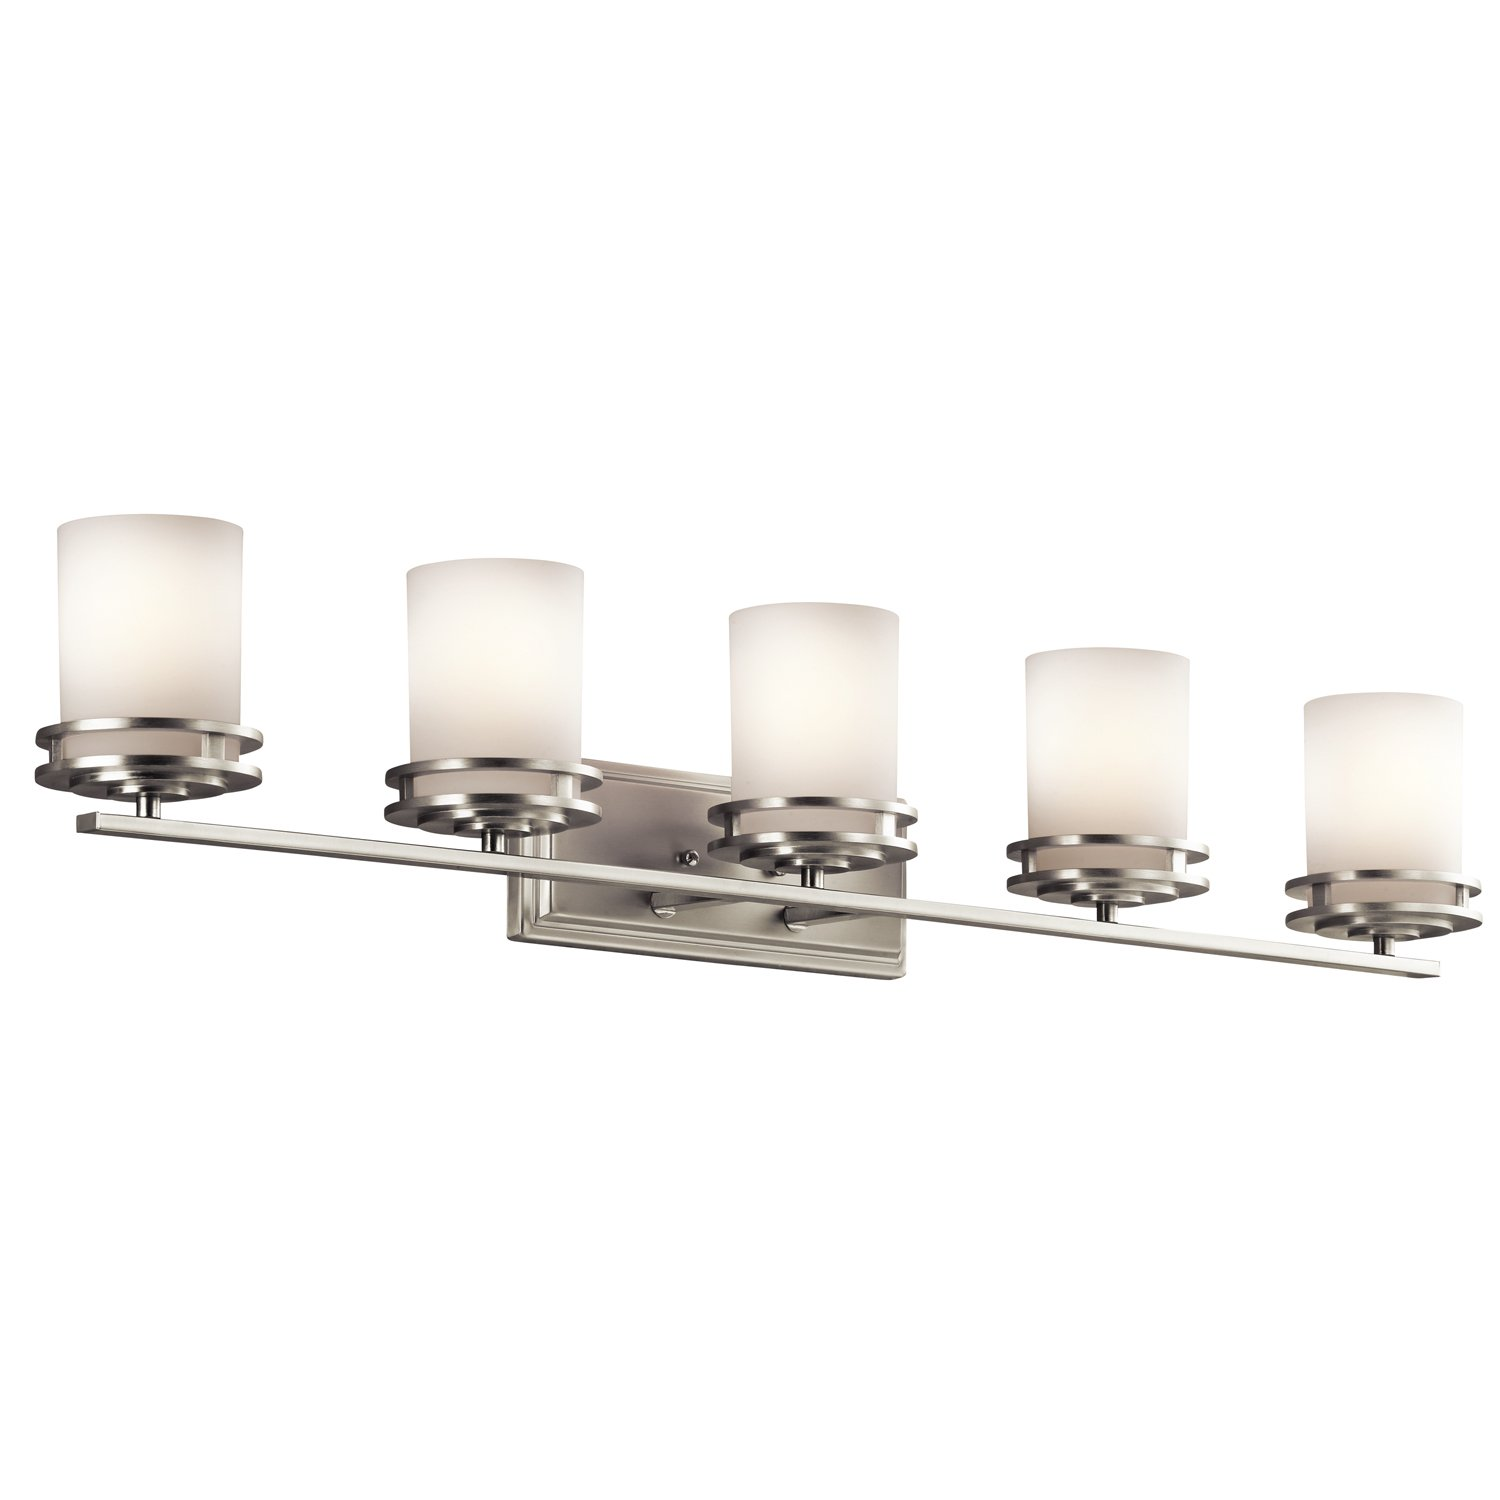 Kichler 5078NI Three Light Bath - Vanity Lighting Fixtures - Amazon.com